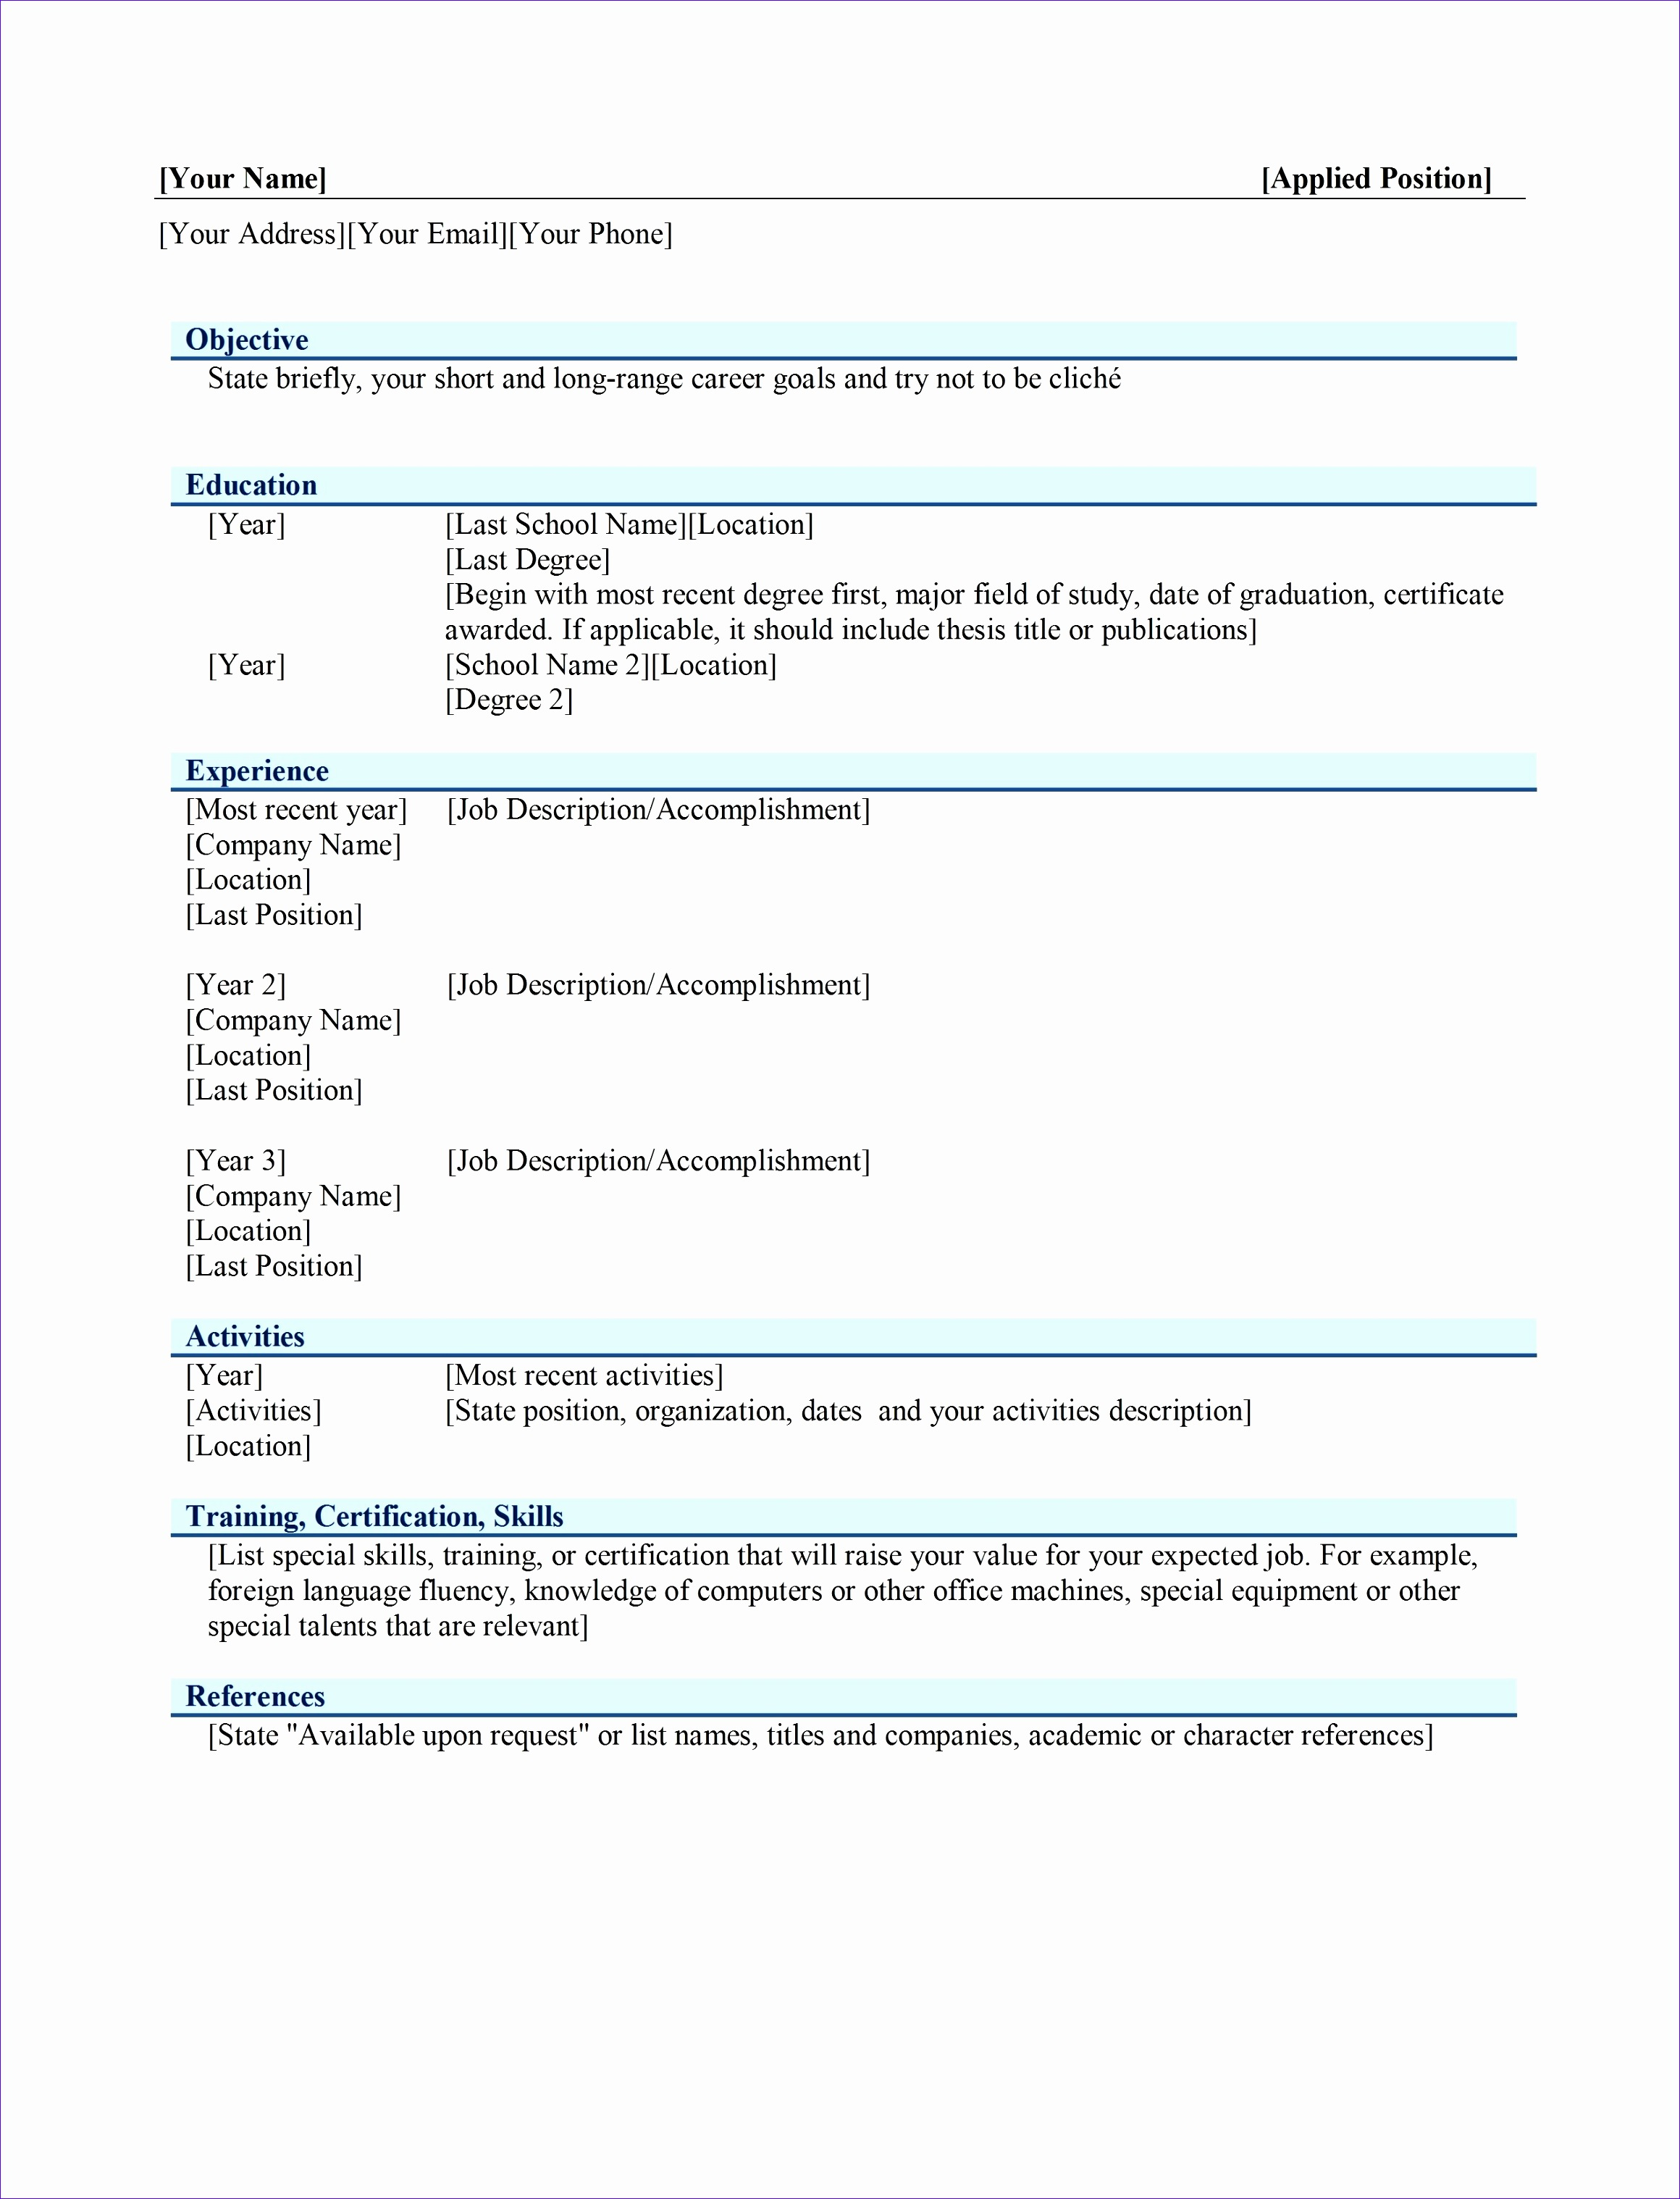 free resume templet 275 free microsoft word resume templates within 85 charming free microsoft resume templates